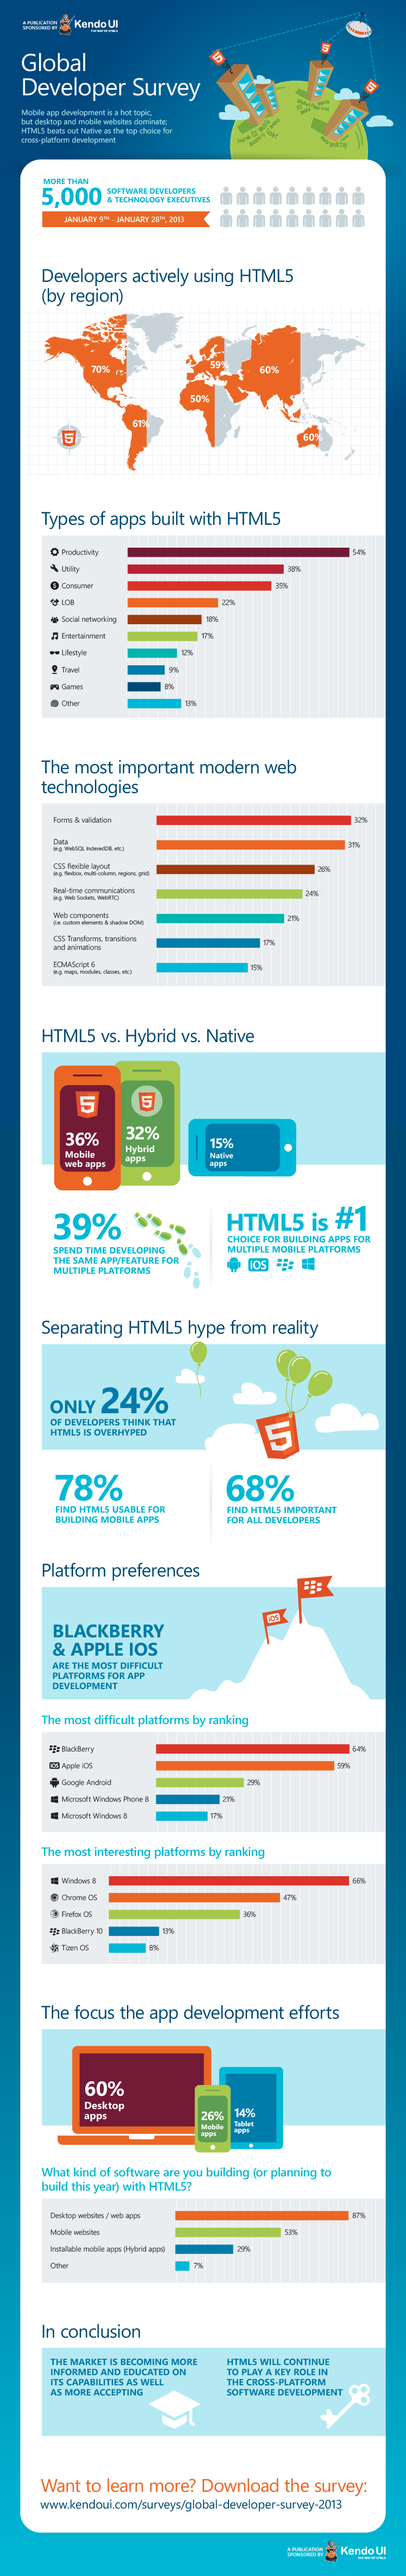 Kendo UI_HTML5 Global Developer Survey_Infographic